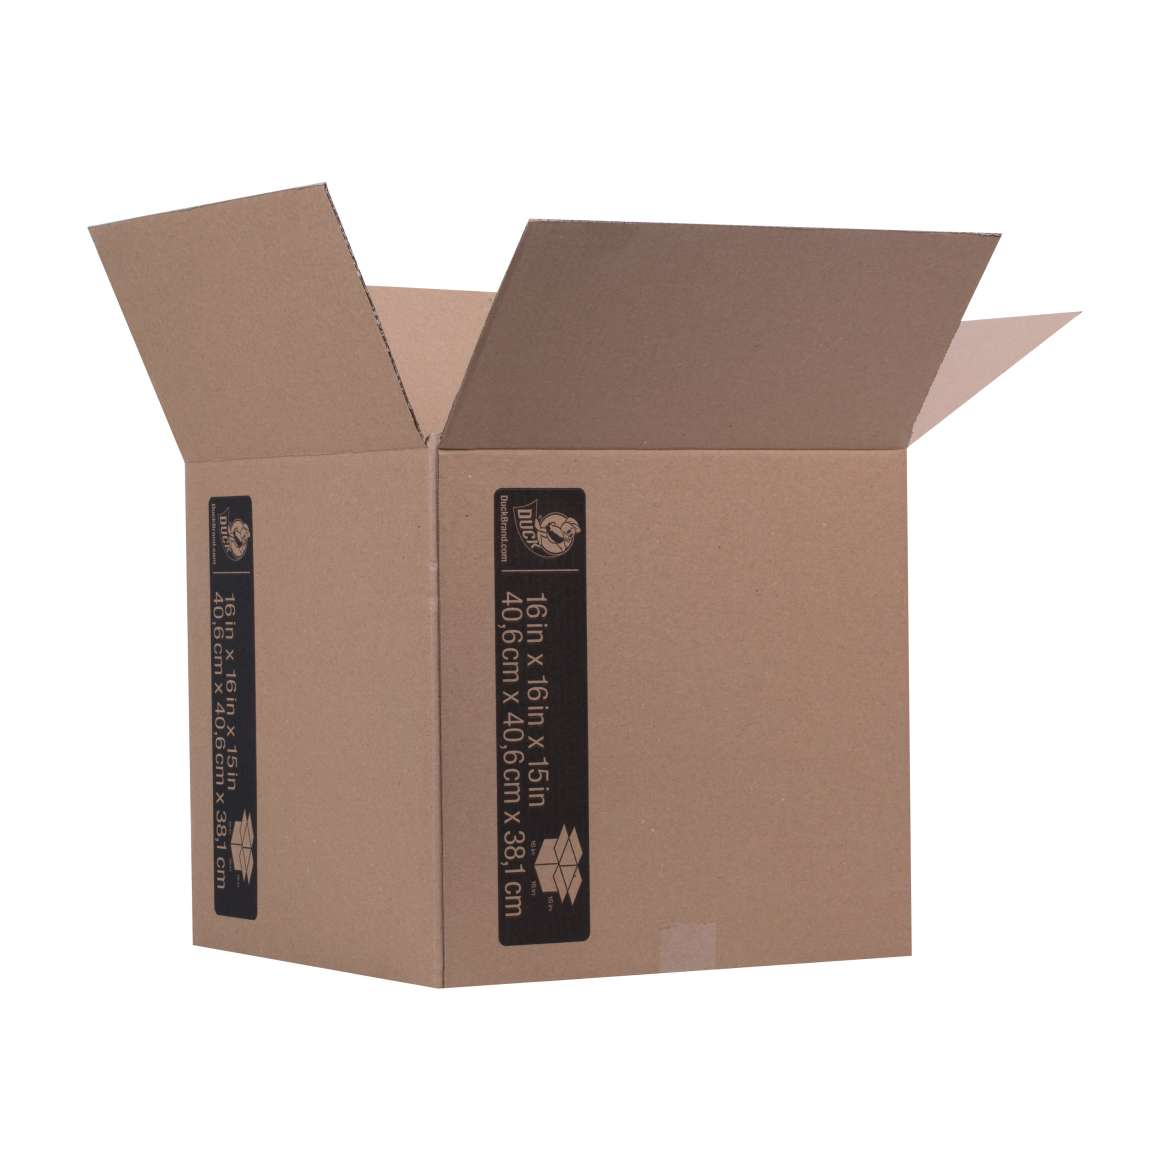 Duck® Brand Kraft Box - Brown, 16 in. x 16 in. x 15 in. Image